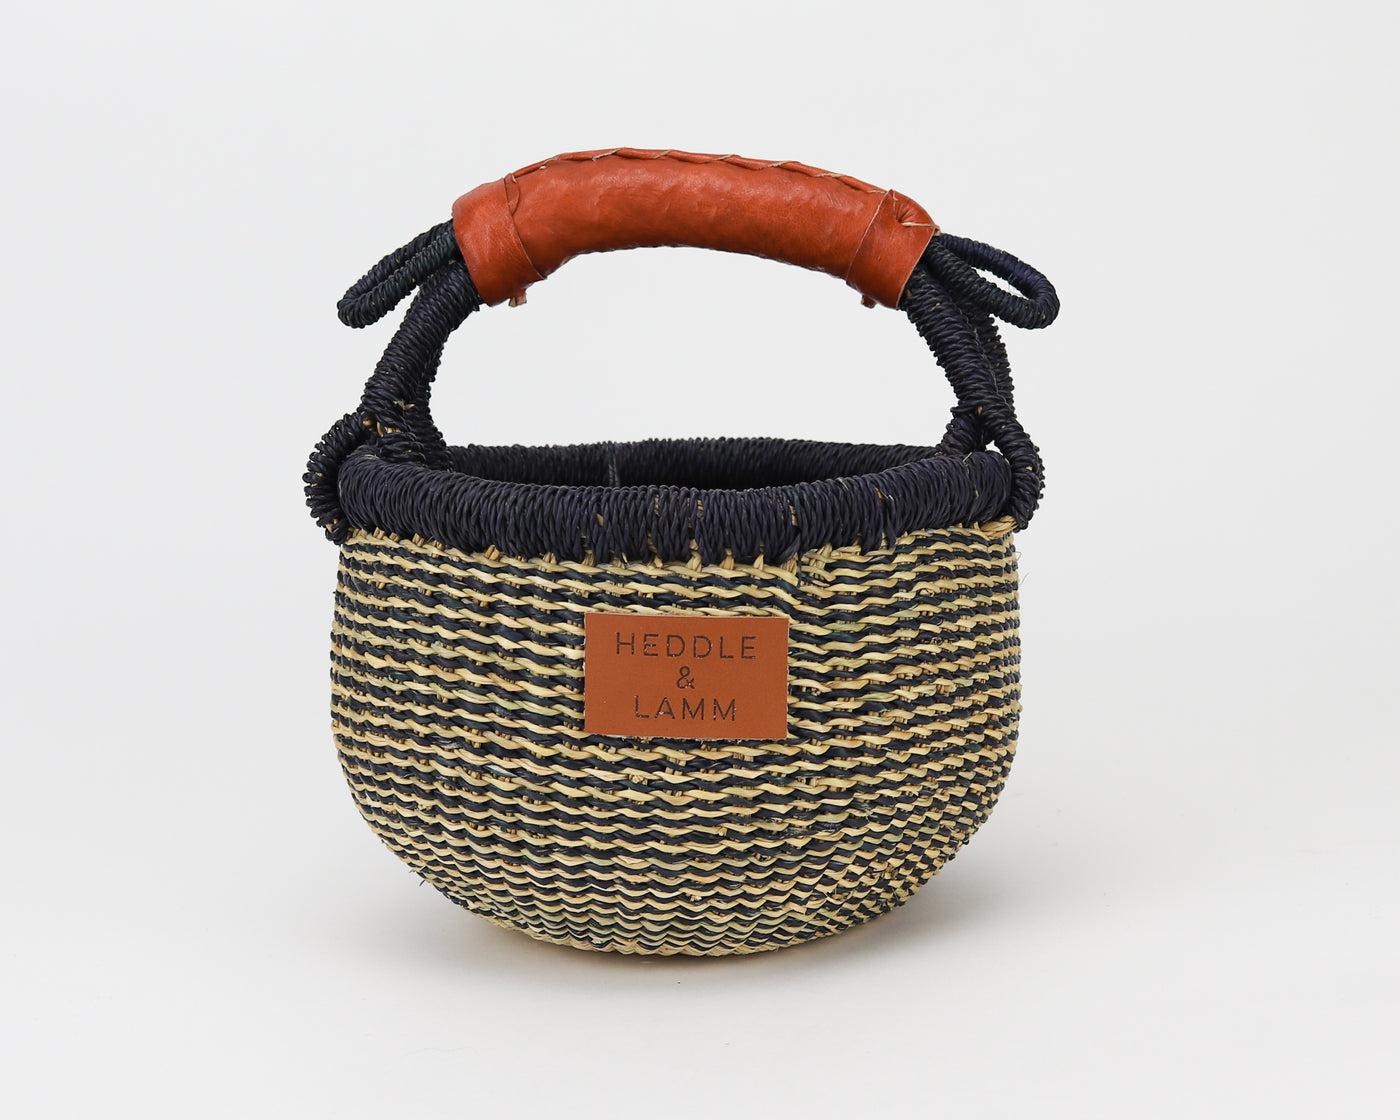 Riffa Mini Bolga Basket - Heddle & Lamm